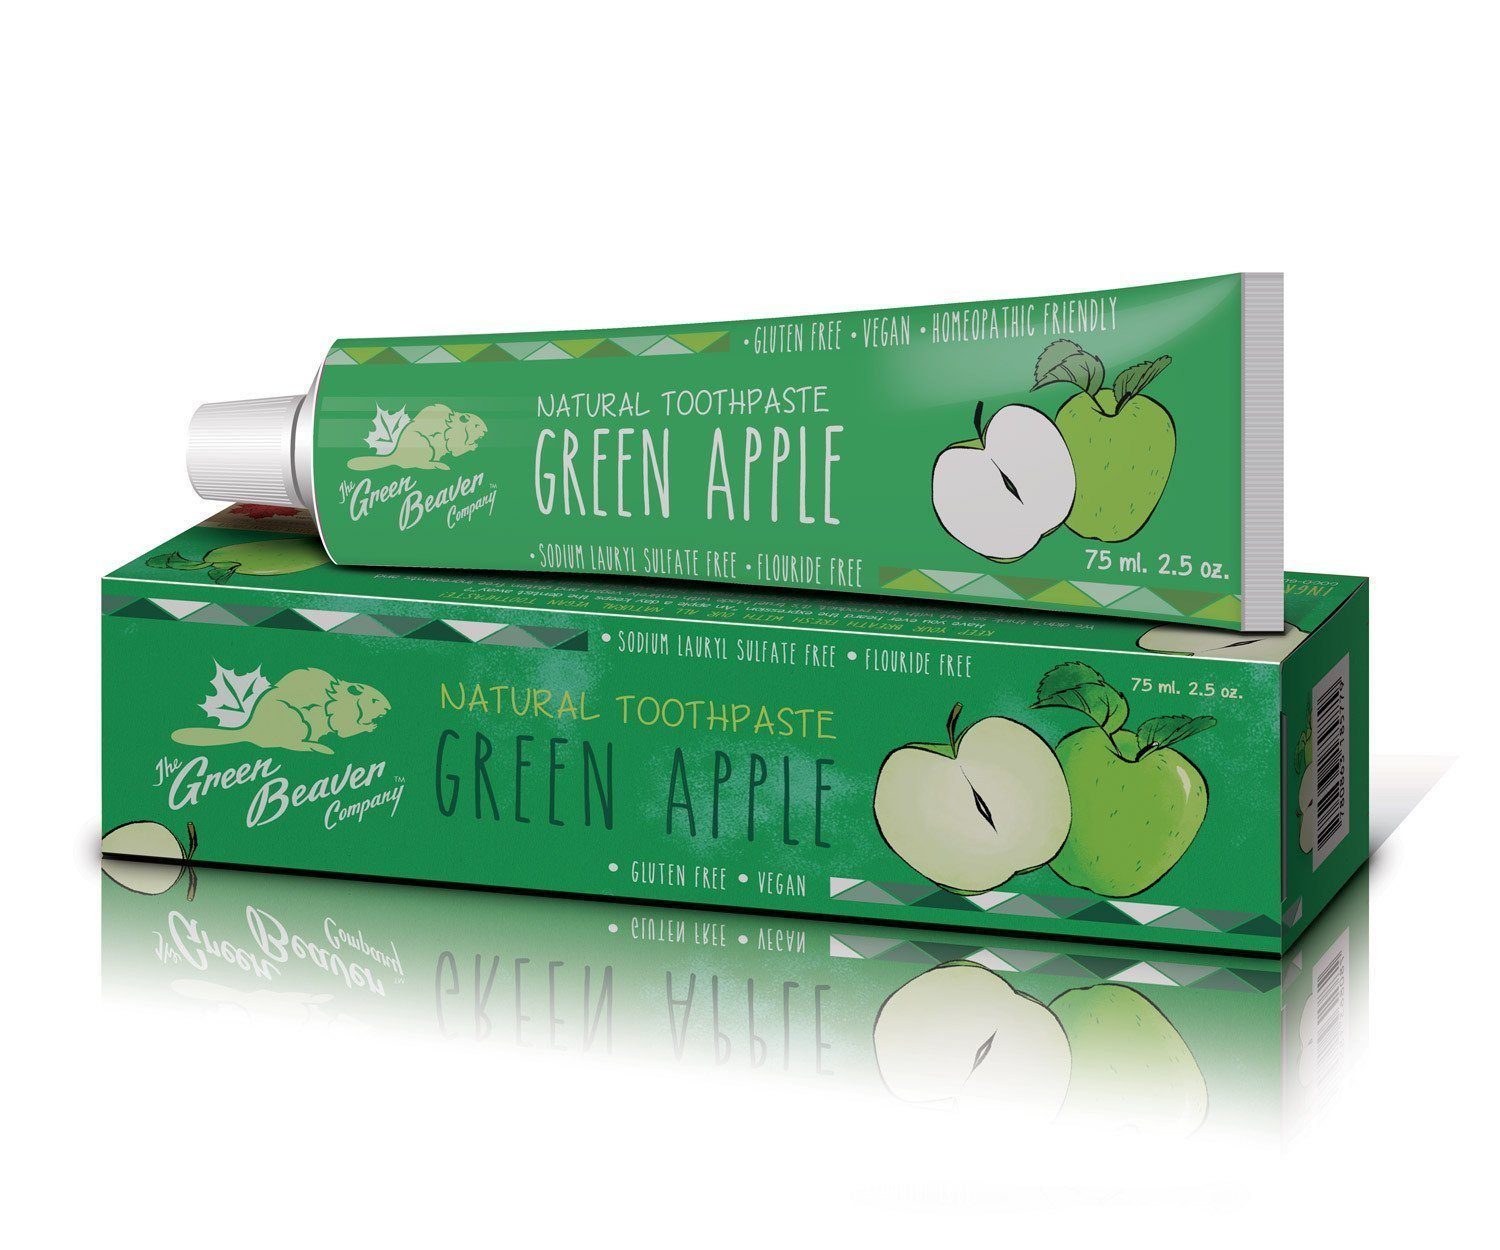 Personal Care - Green Beaver - Green Apple Toothpaste, 75 Ml